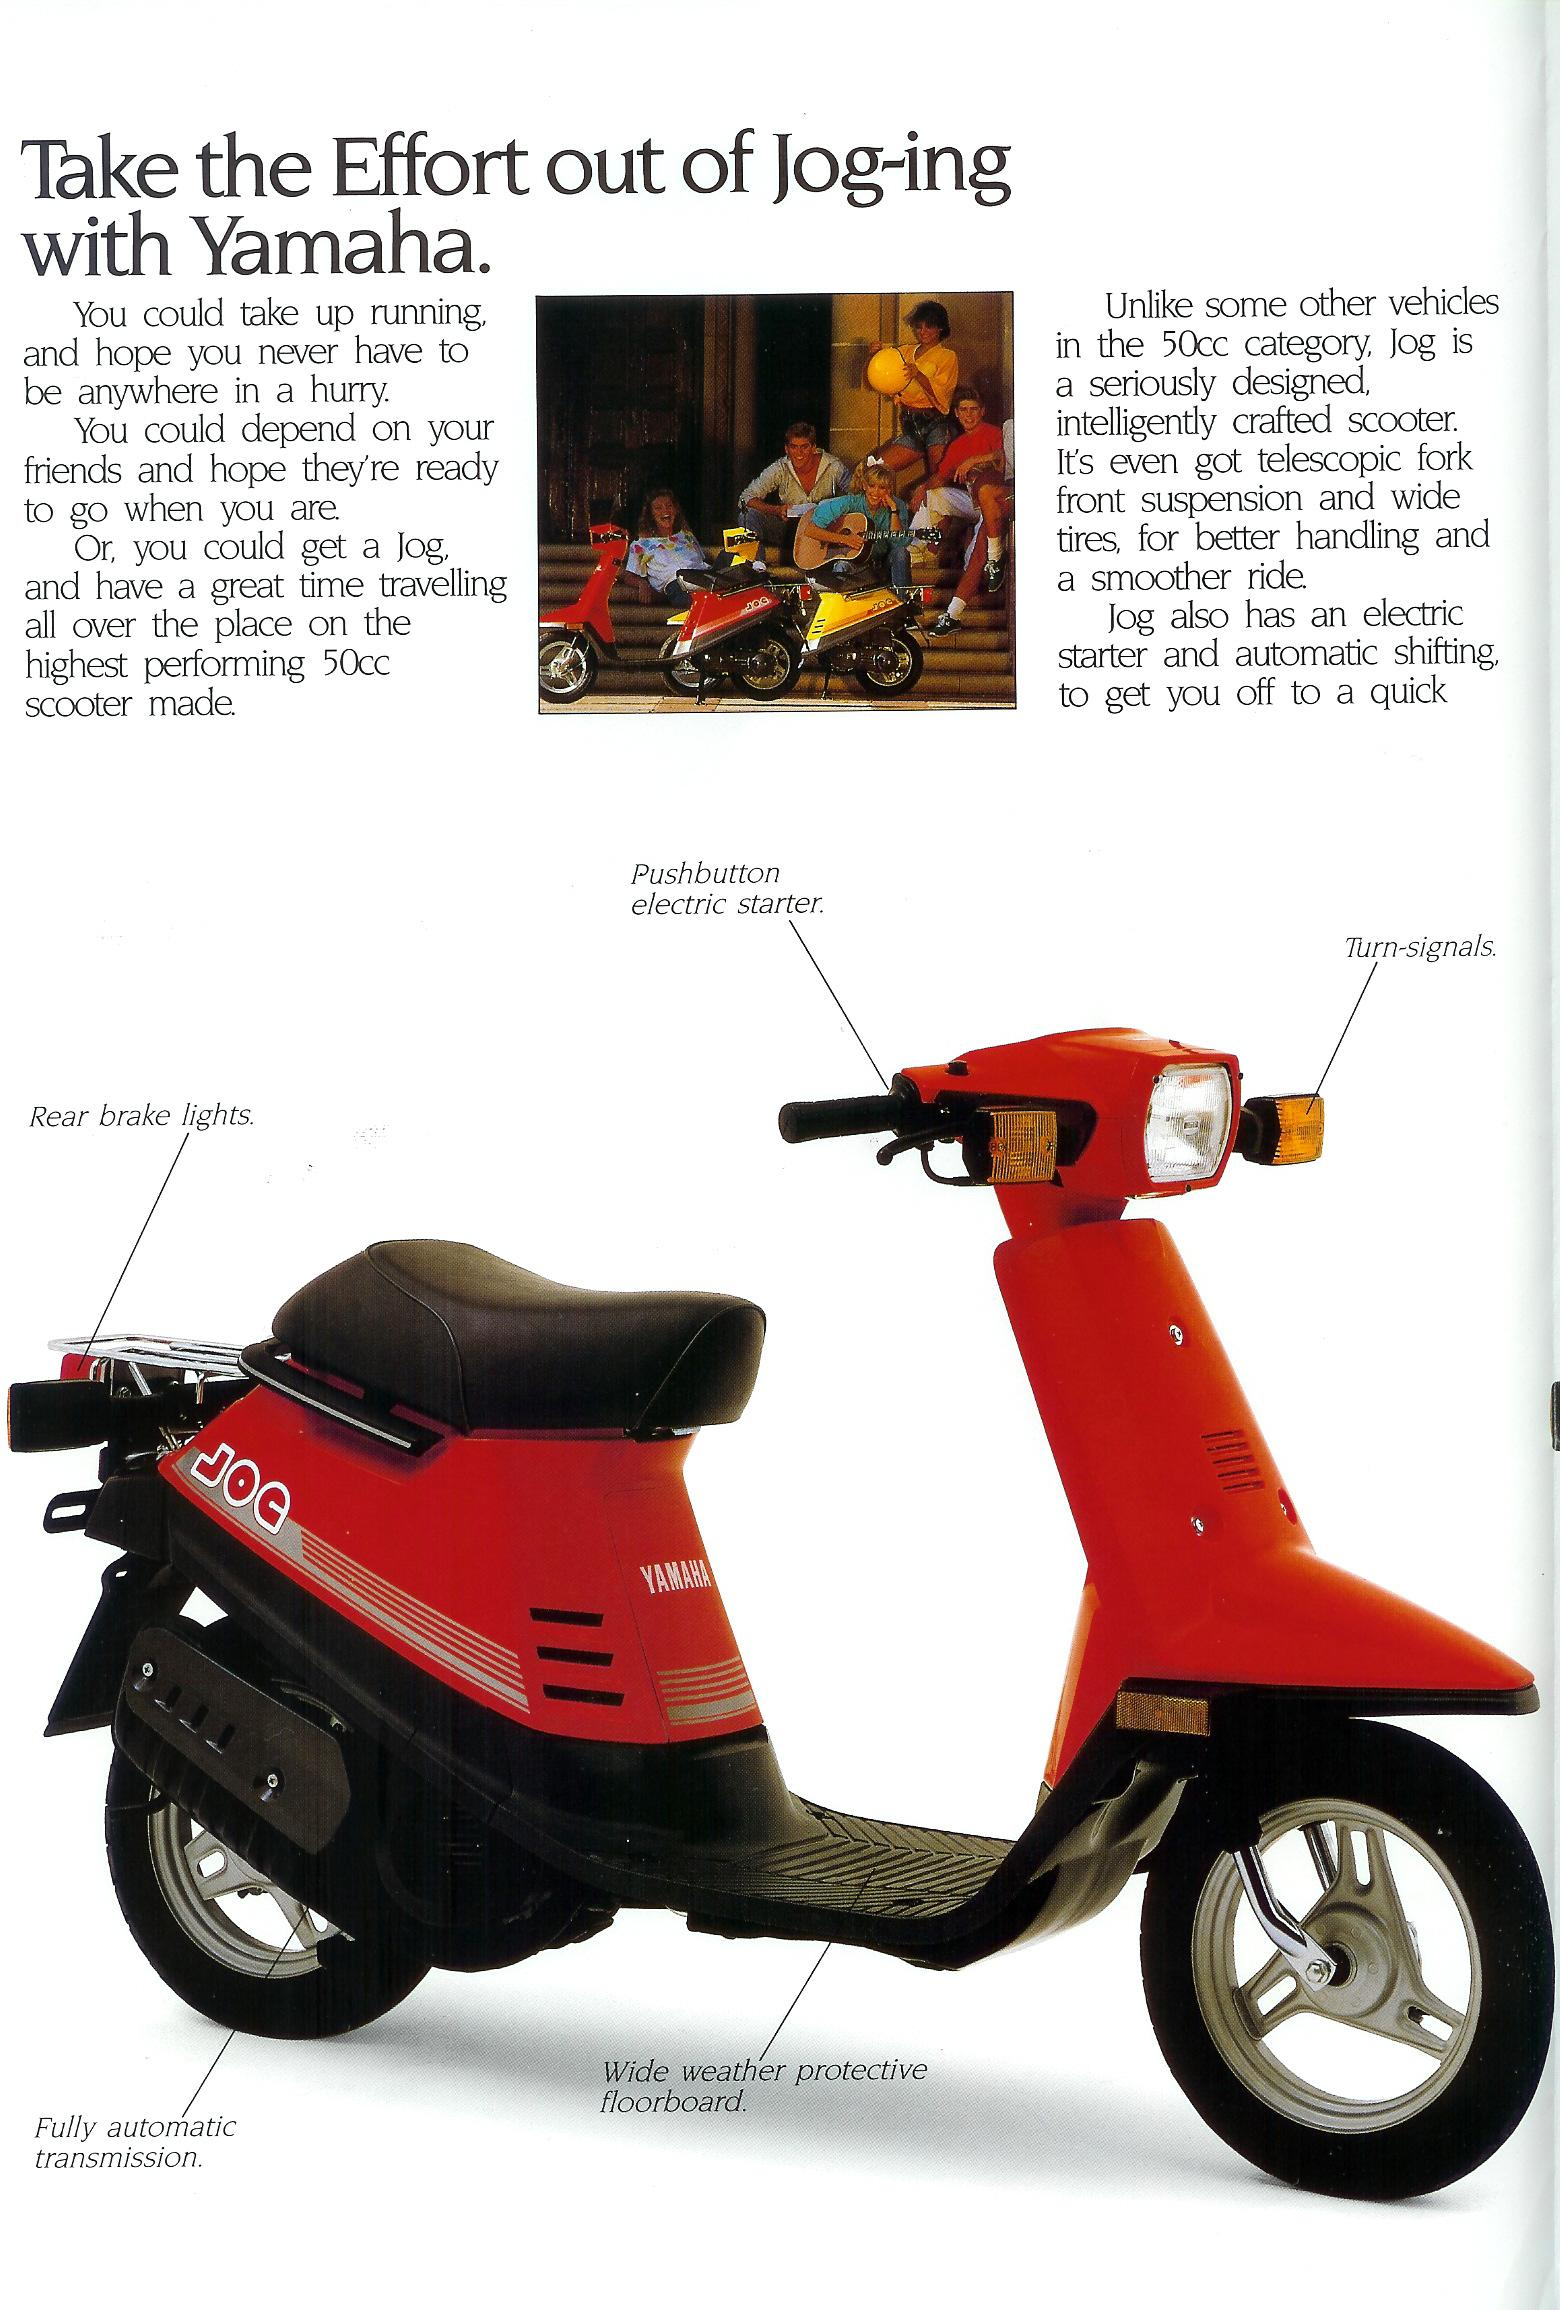 General Yamaha Scooter Information Qt 50 Wiring Diagram Full Size